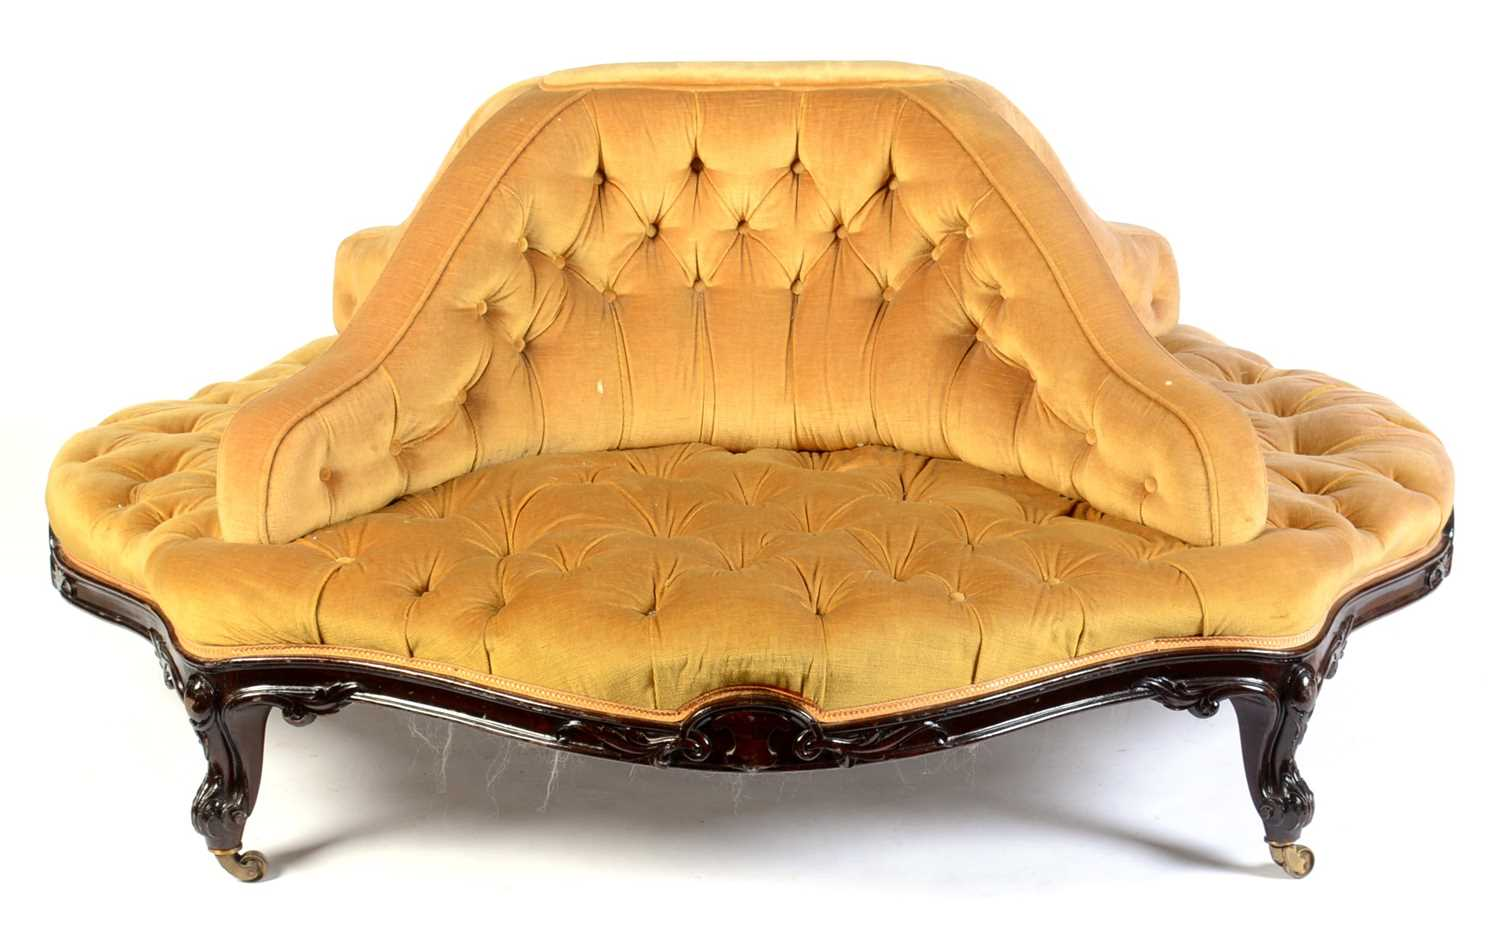 Lot 687 - Victorian rosewood framed conversation seat